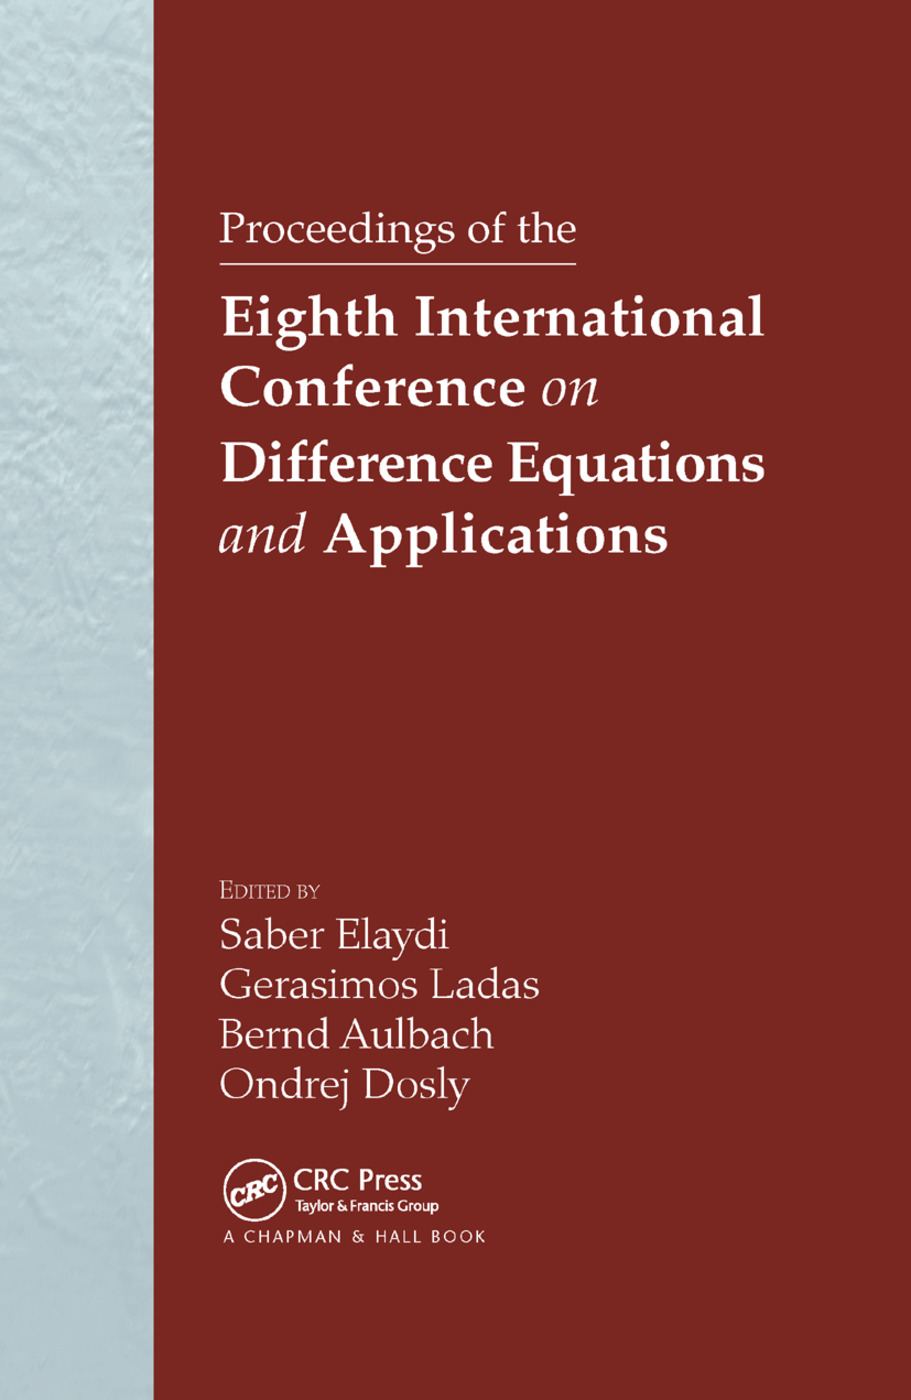 Proceedings of the Eighth International Conference on Difference Equations and Applications: 1st Edition (Paperback) book cover